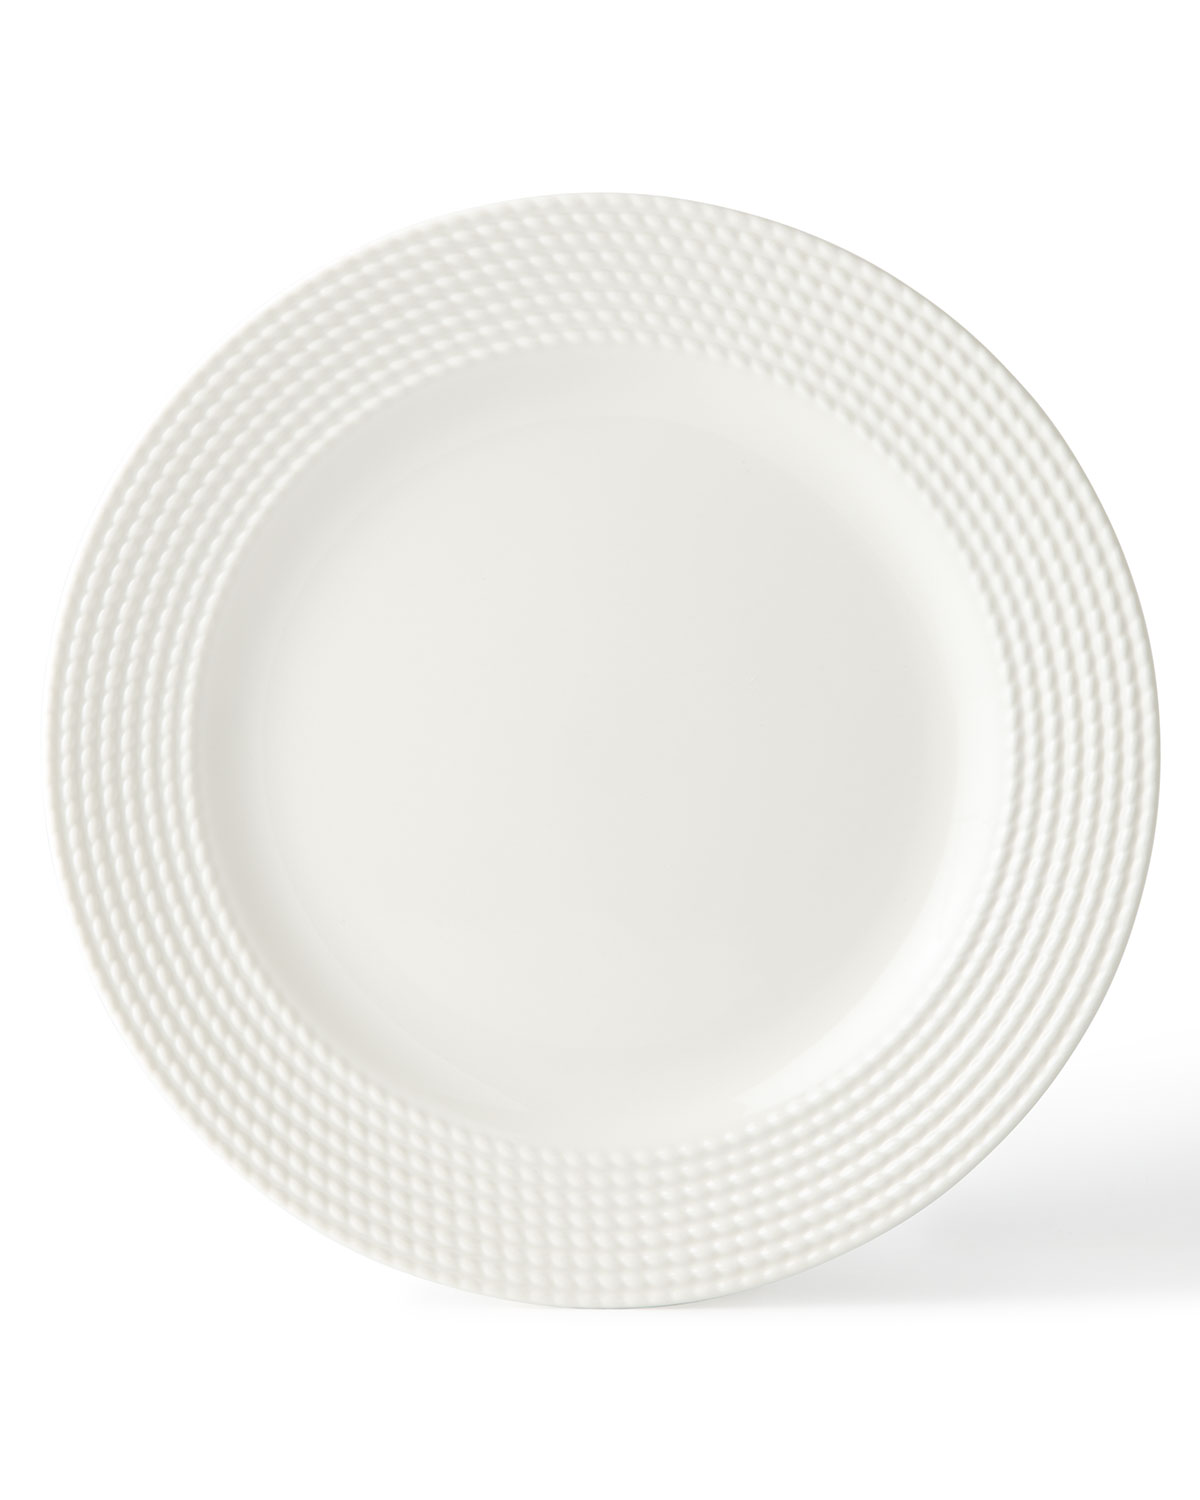 kate spade new york Four-Piece Wickford Dinnerware Place Setting | Neiman Marcus  sc 1 st  Neiman Marcus & Four-Piece Wickford Dinnerware Place Setting